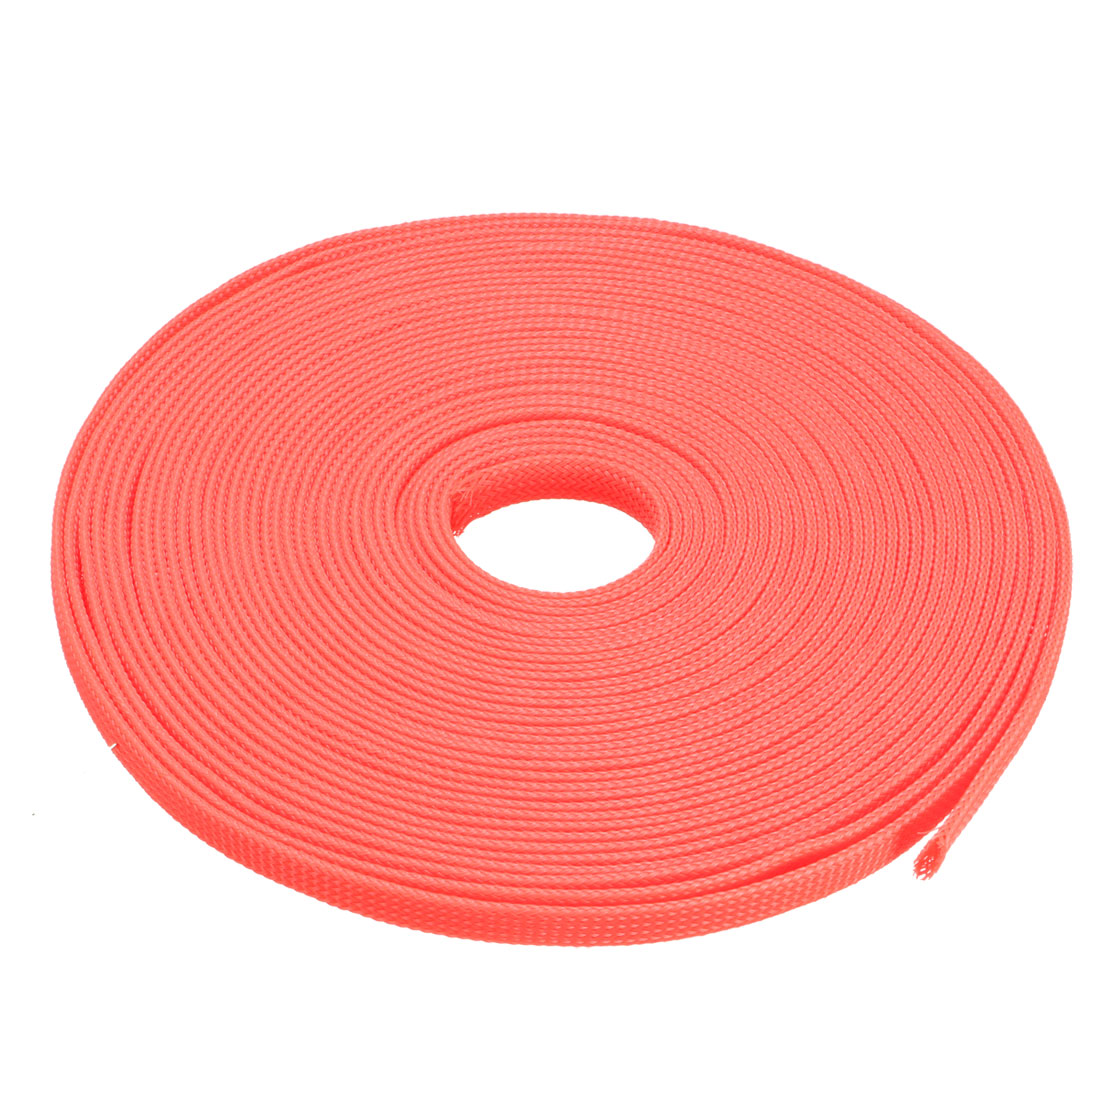 PET Braided Sleeving 32.8 Feet 10m Expandable Cable Wrap 10mm Diameter Wire Sheath Orange